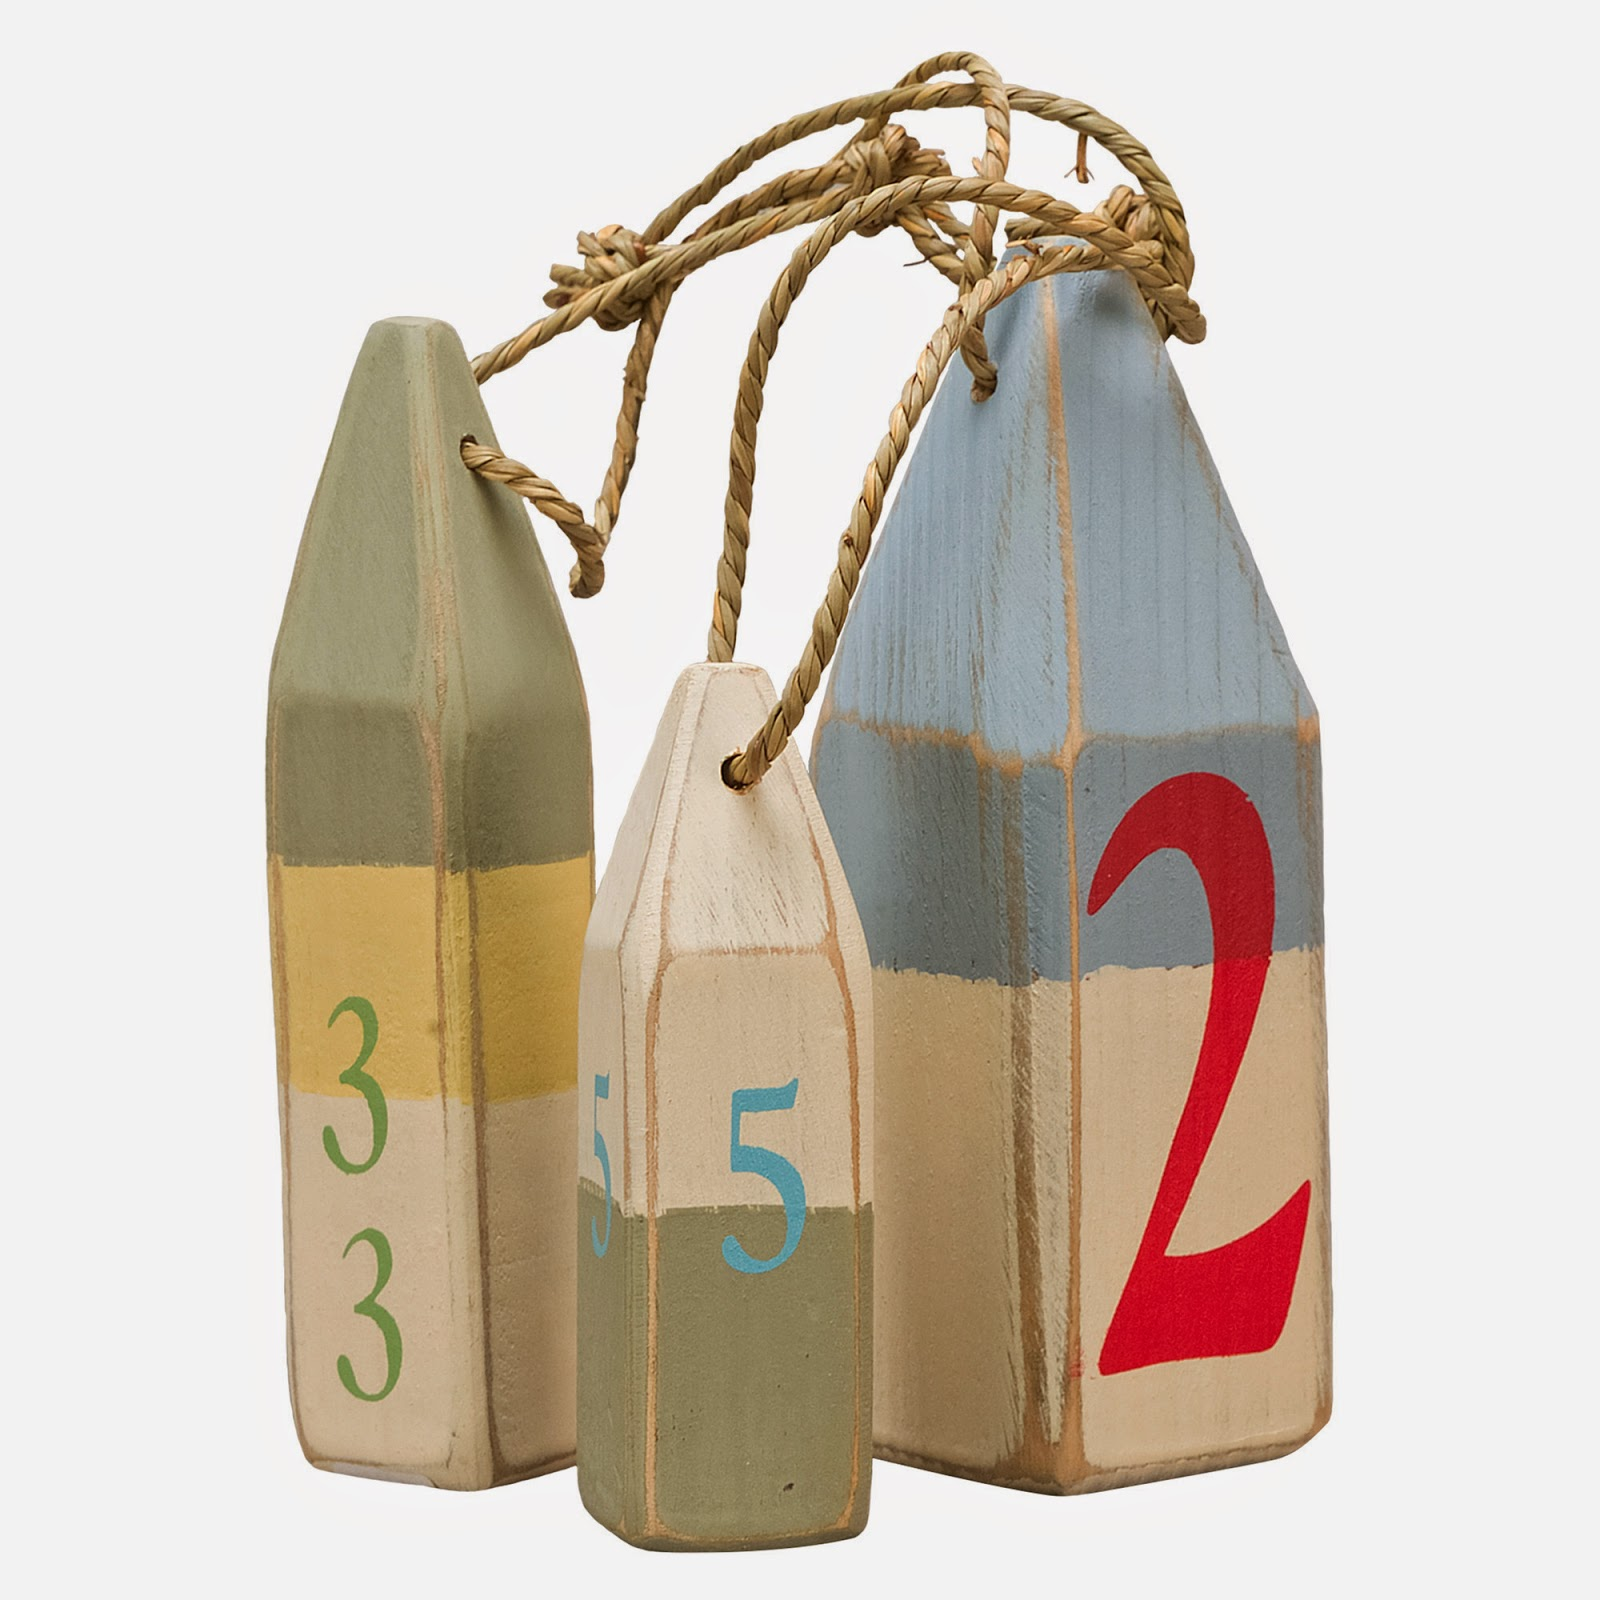 http://www.seasideinspired.com/5217-wood-buoys.htm